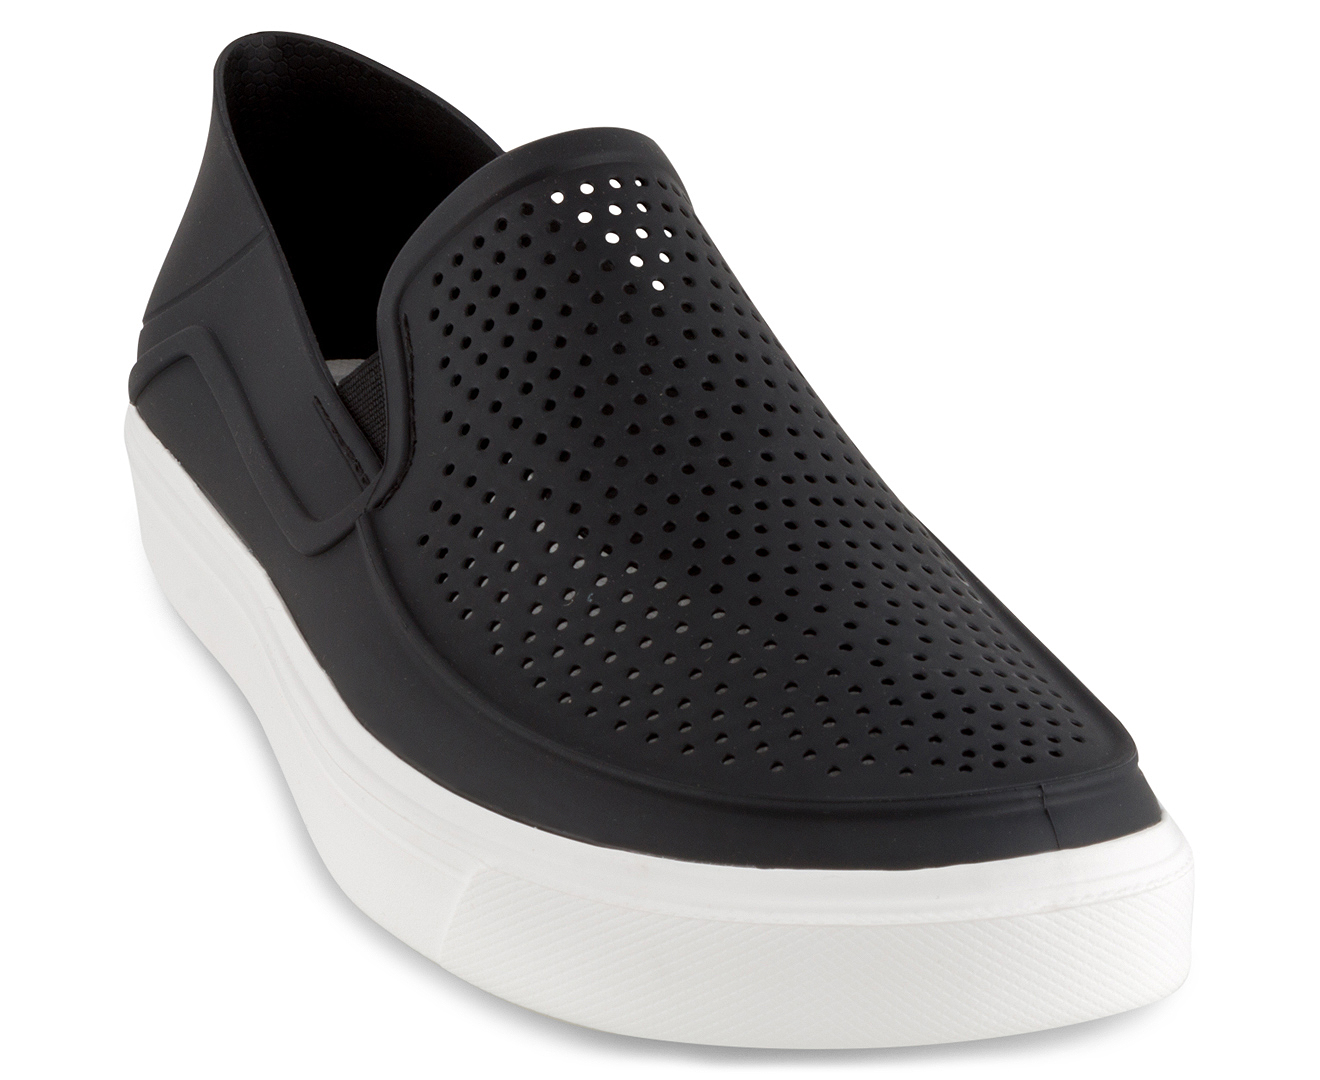 slip on casual dress shoes photo - 1